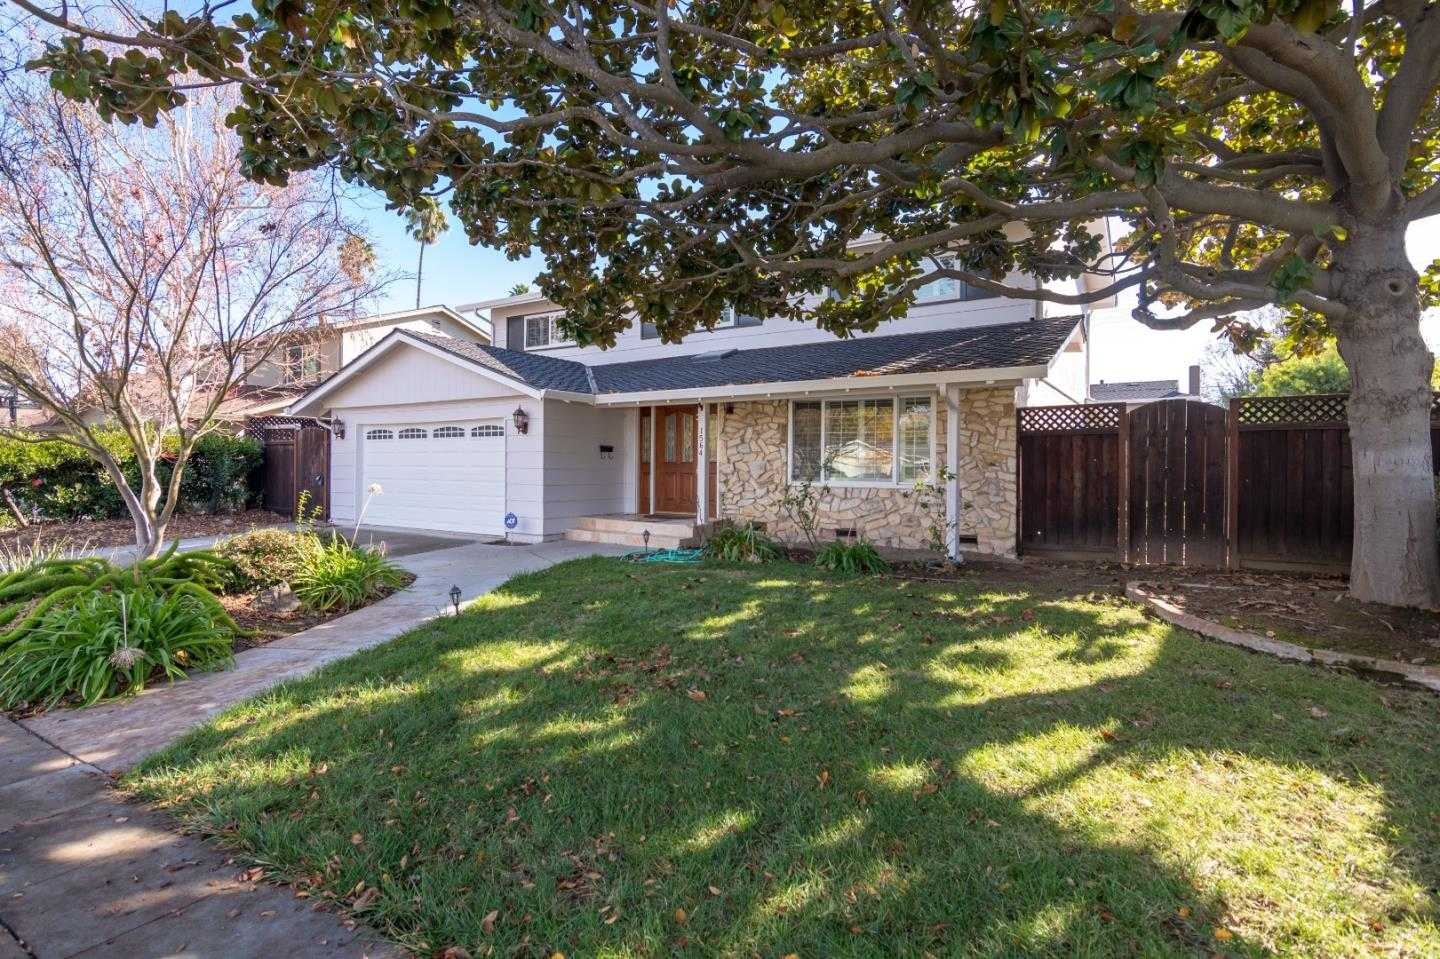 $1,850,000 - 5Br/4Ba -  for Sale in San Jose